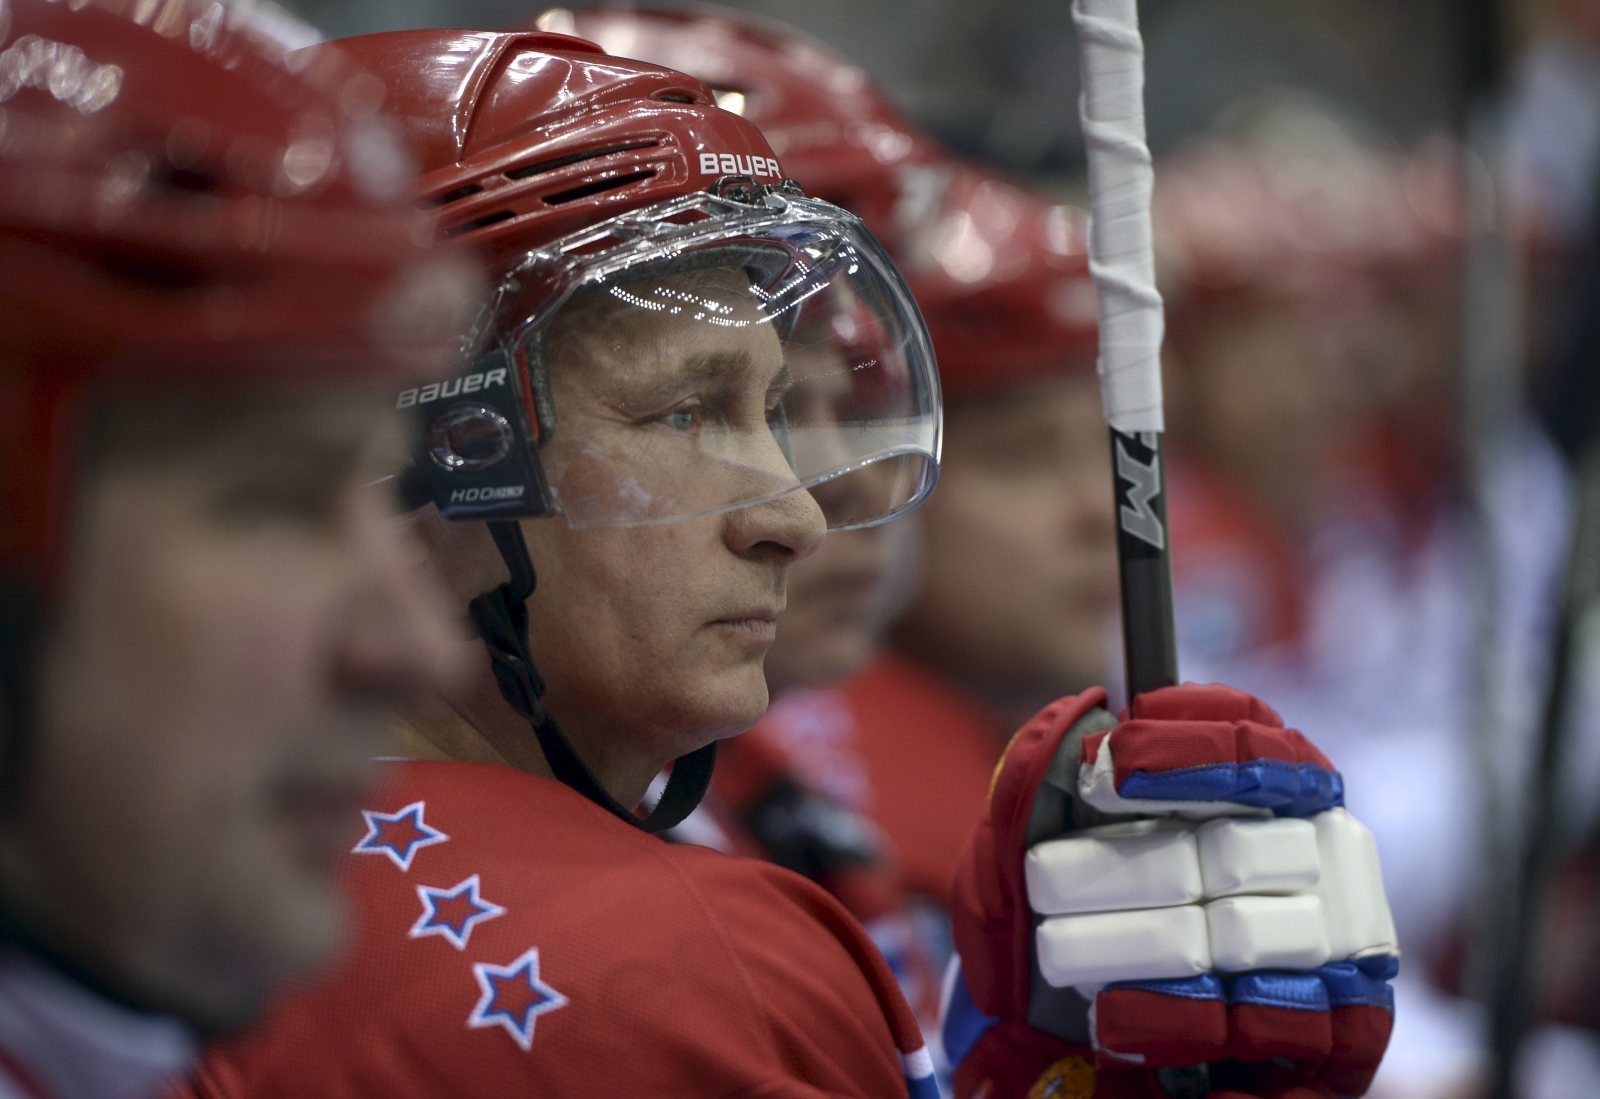 Putin ice hockey